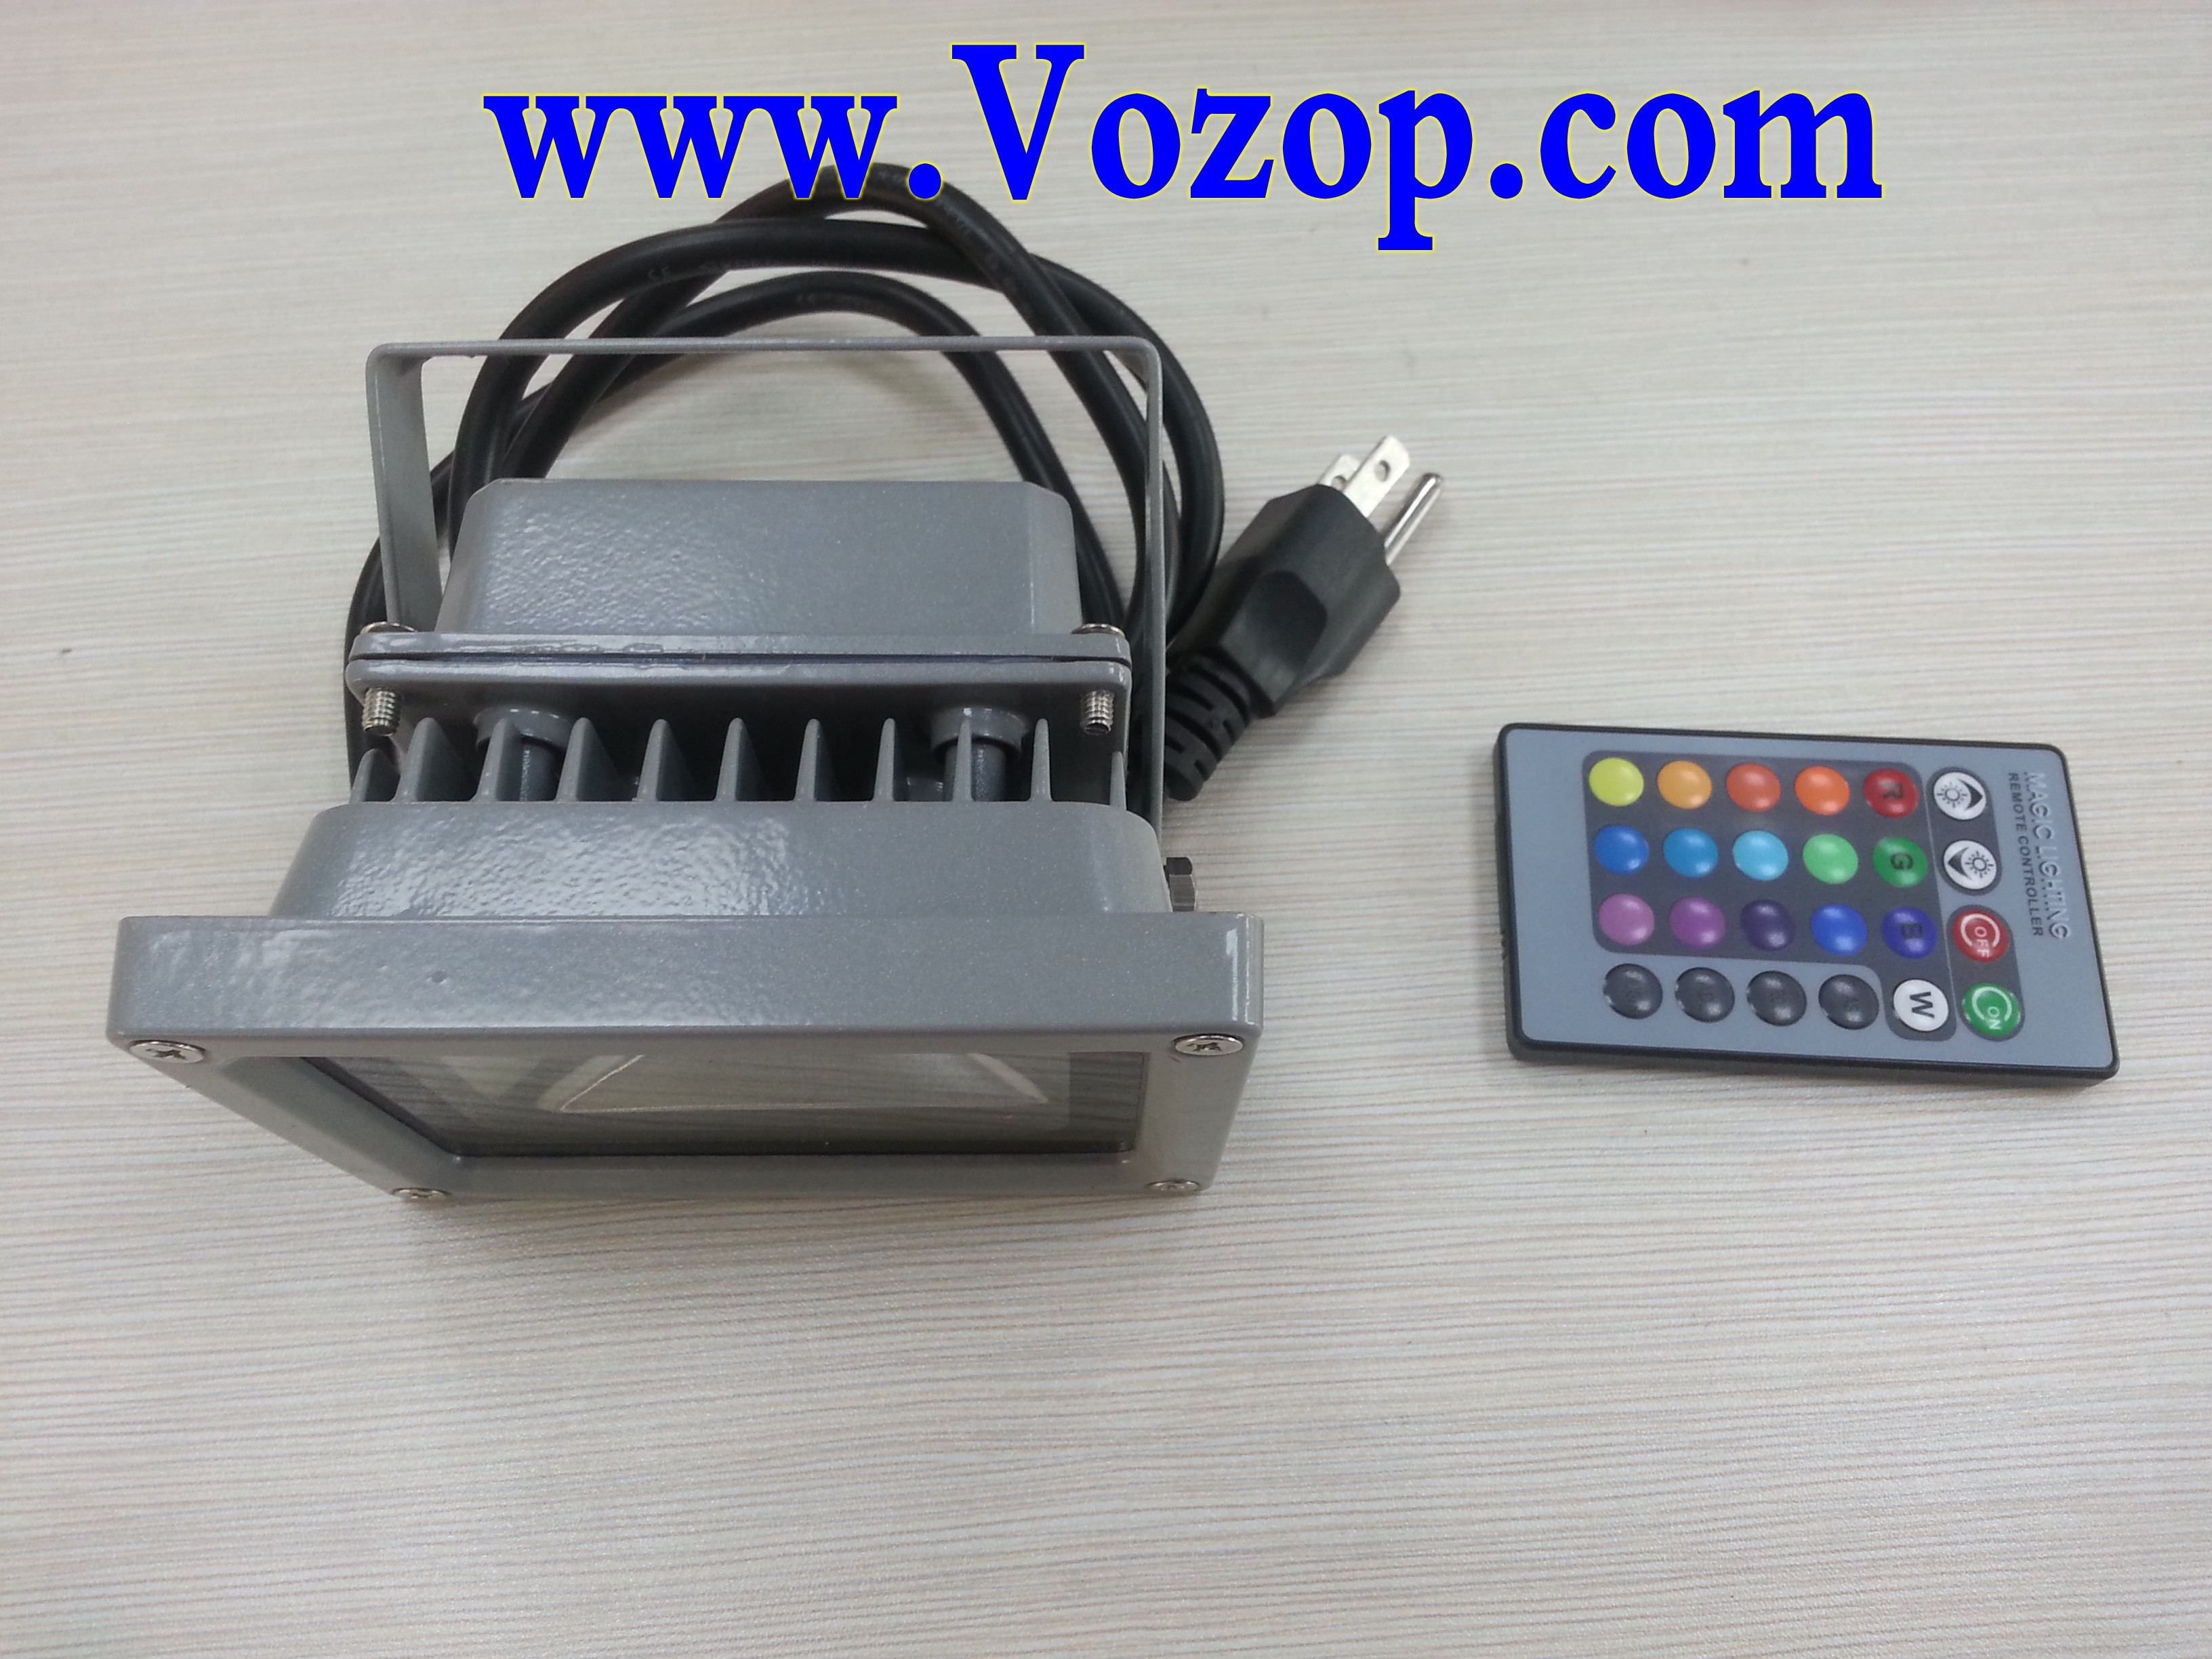 RGB_floodlight_10W_with_Remote_controller_Waterproof_LED_Outdoor_Flood_Lights